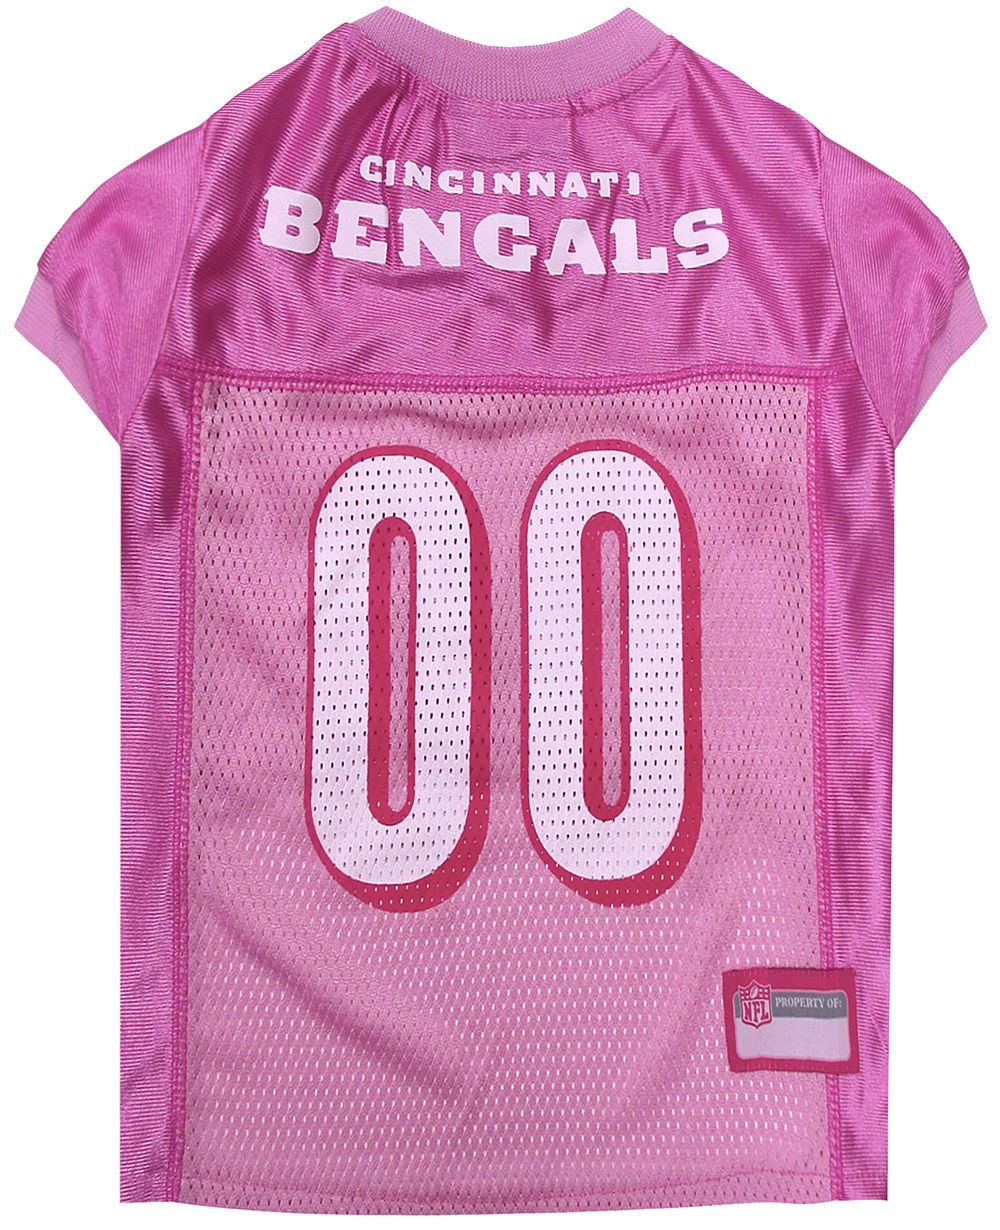 Cincinnati Bengals NFL Licensed Pink Dog Football Jersey